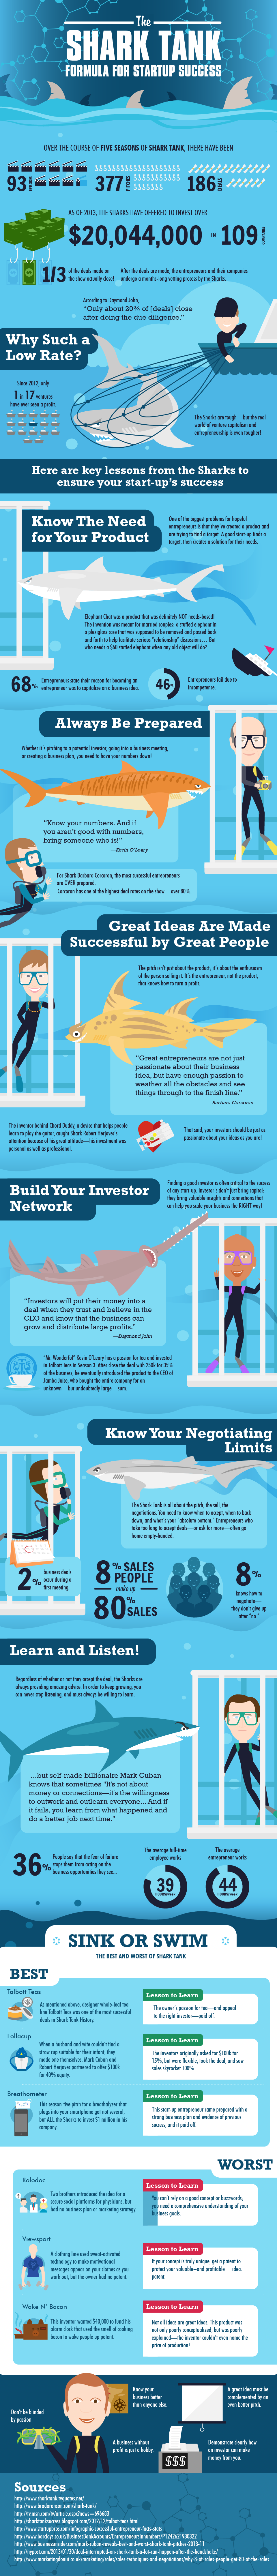 Shark Tank Formula for Startup Success - Gifographics